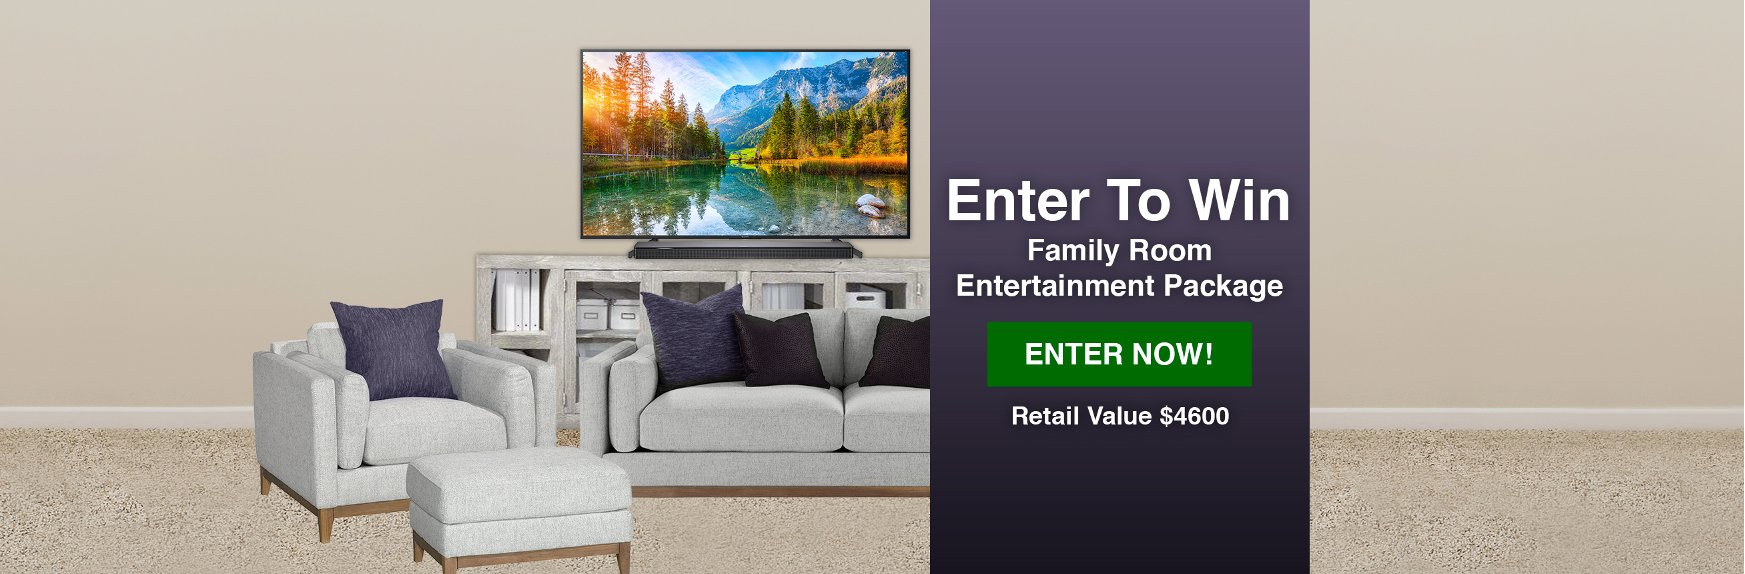 Enter To Win A Family Room Entertainment Package From RC Willey | Giveaway